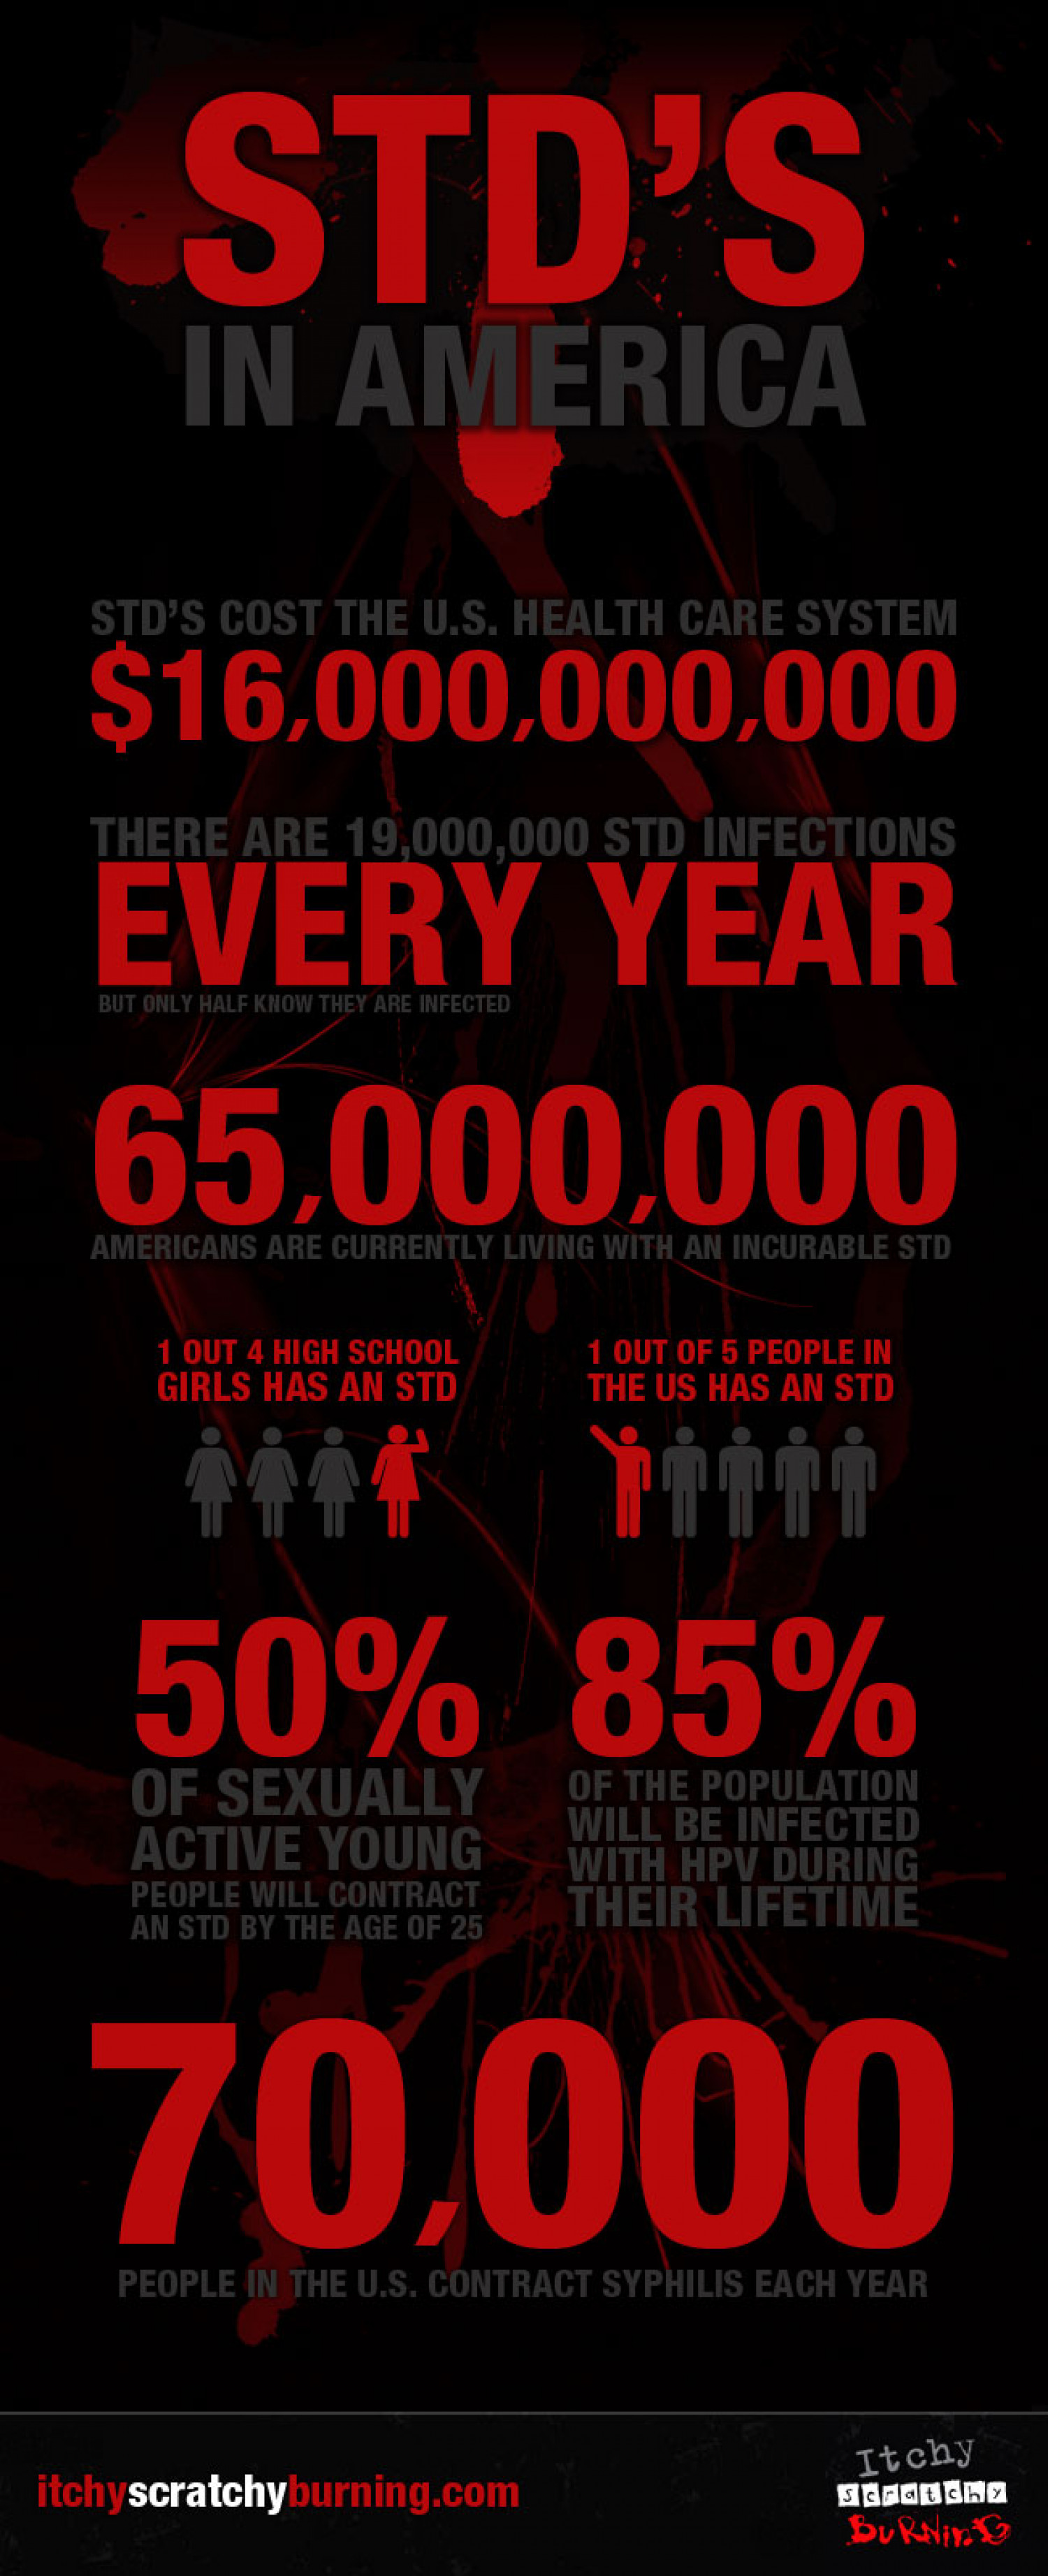 STDs in America Infographic